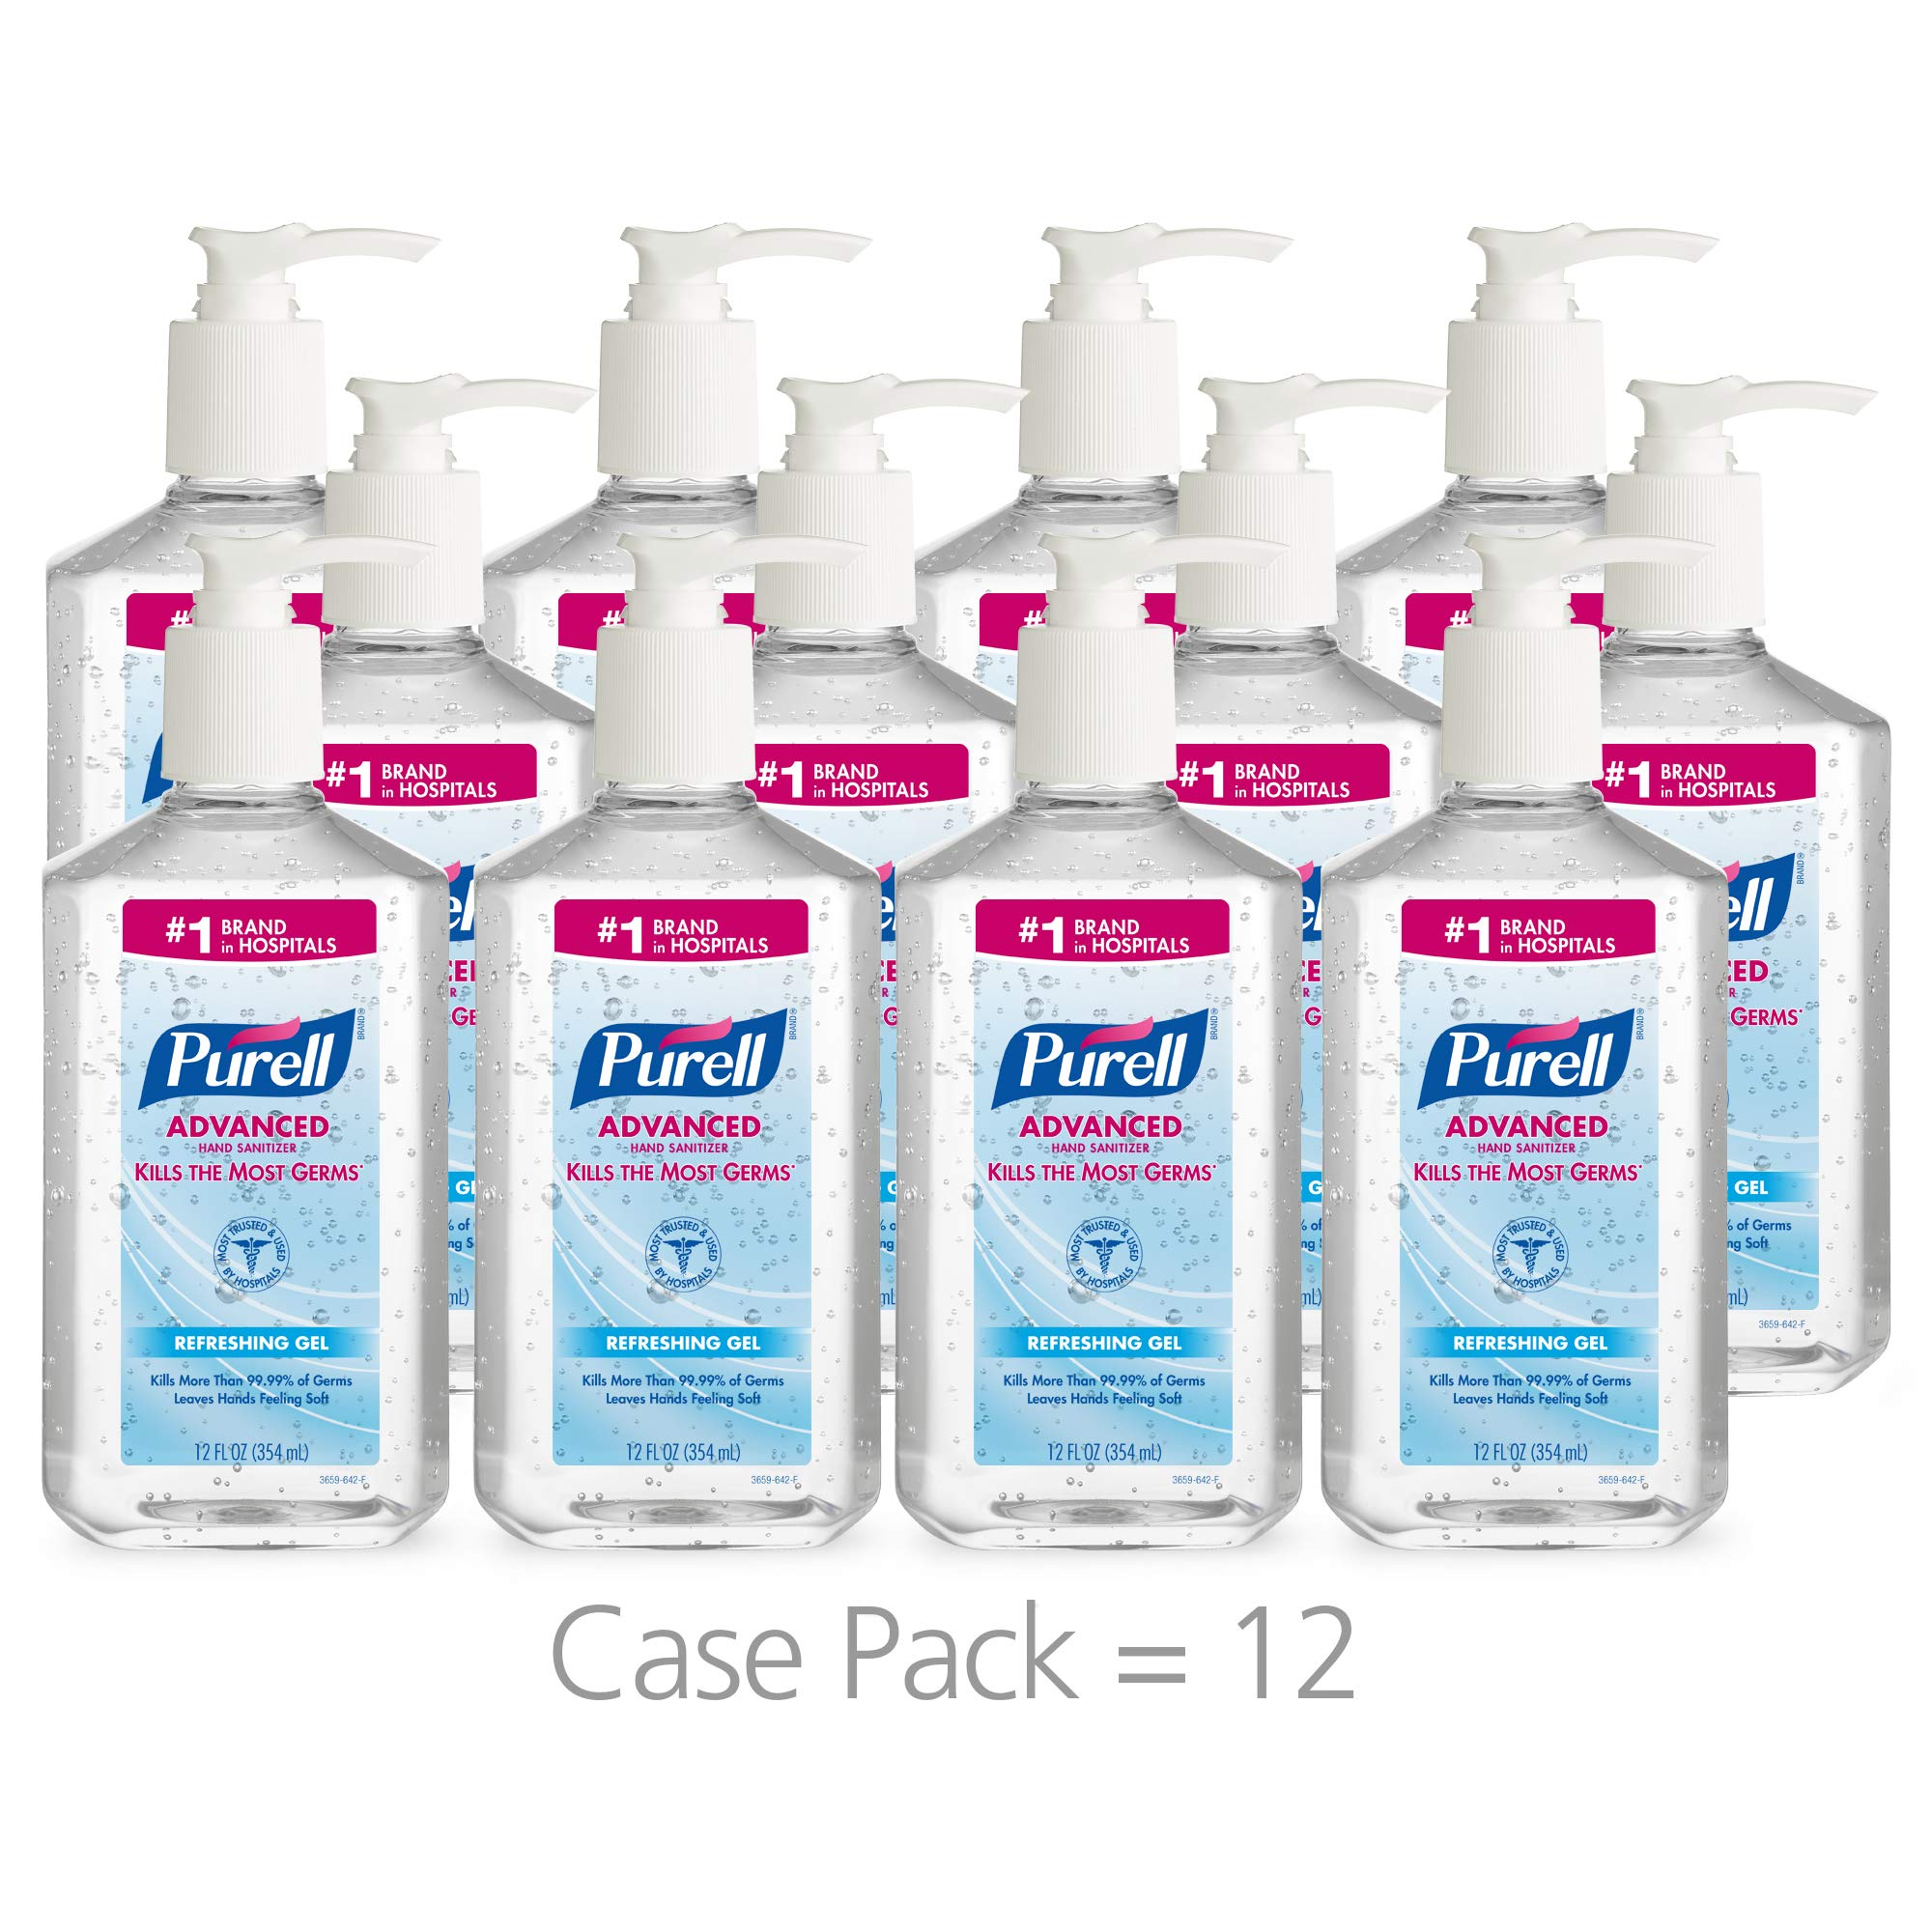 PURELL Advanced Hand Sanitizer, Refreshing Gel, 12 fl oz Sanitizer Table Top Pump Bottle (Case of 12) - 3659-12 by Purell